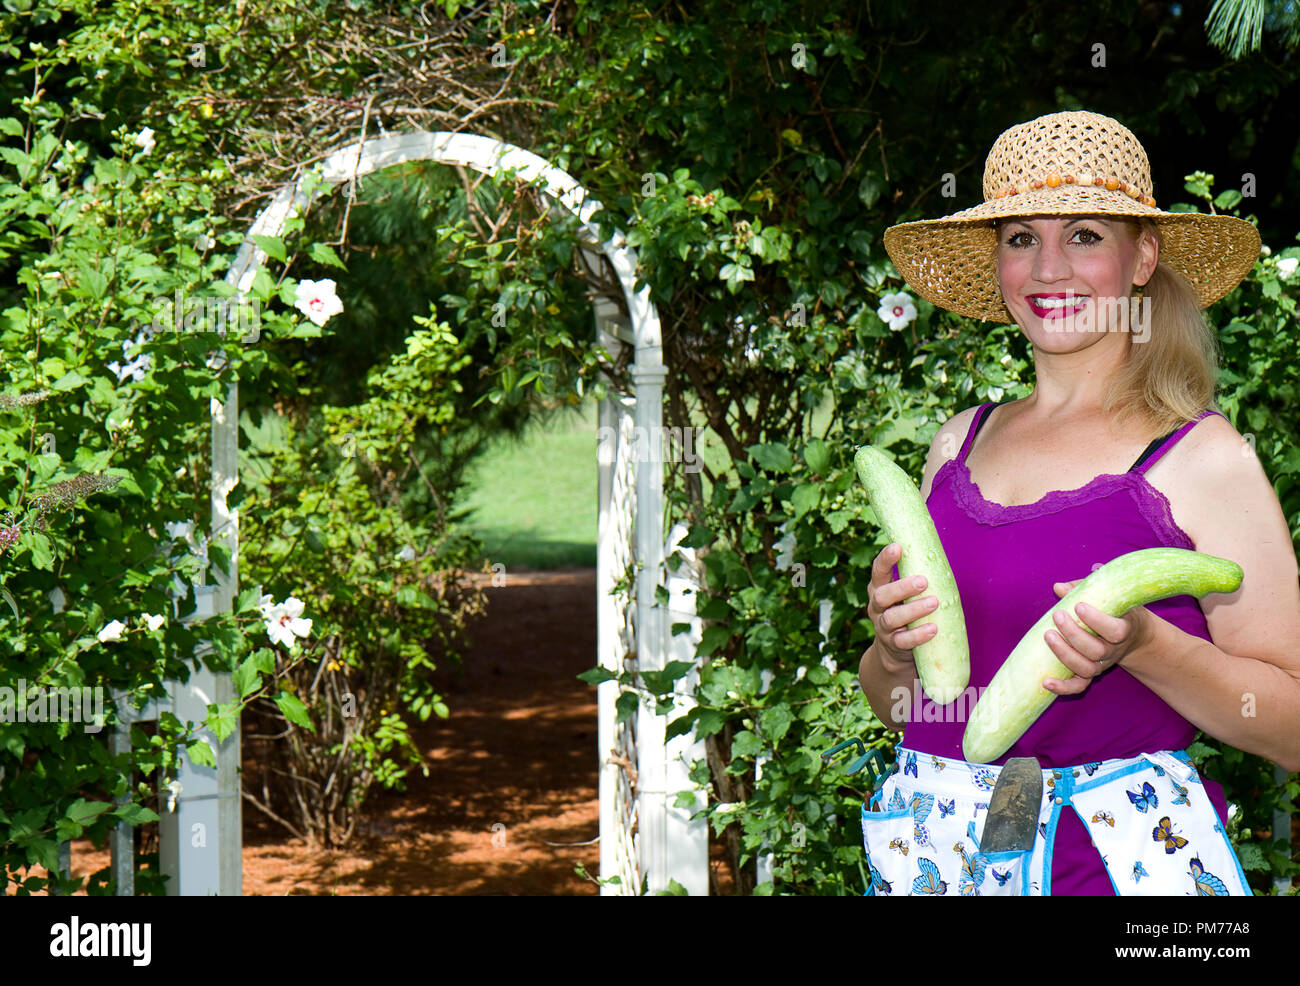 Woman working in her garden wearing sunhat and holding squash or flowers.  Lush green flowers and plants. Stock Photo